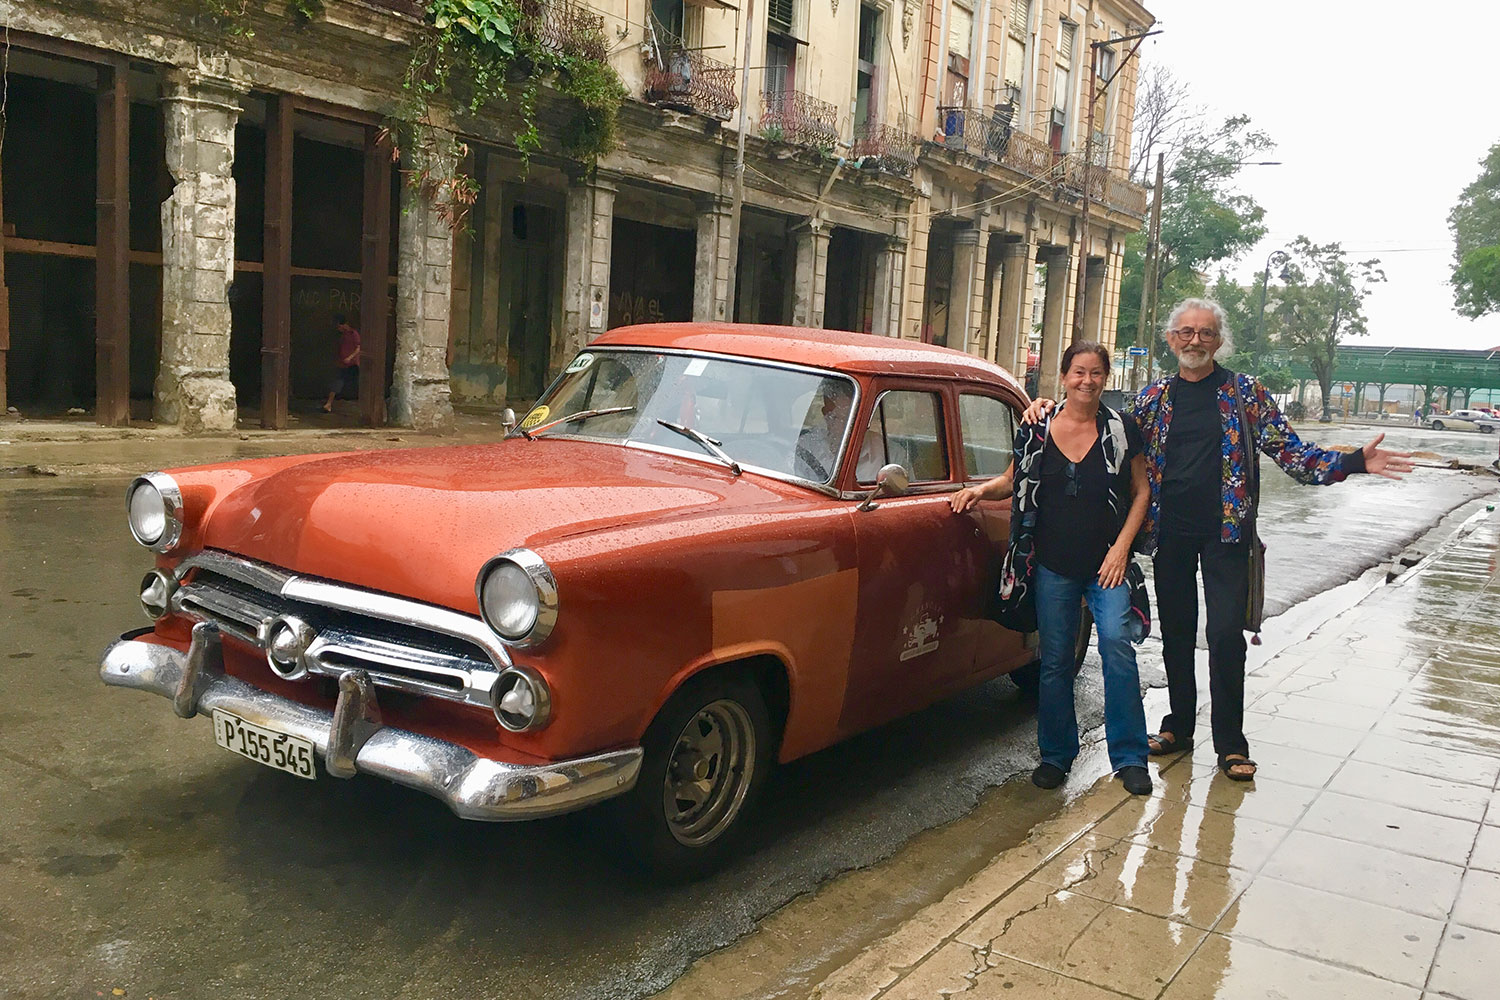 Outside Buena Vista Social Club. We arrived in this car from the airport and the driver took us straight here.